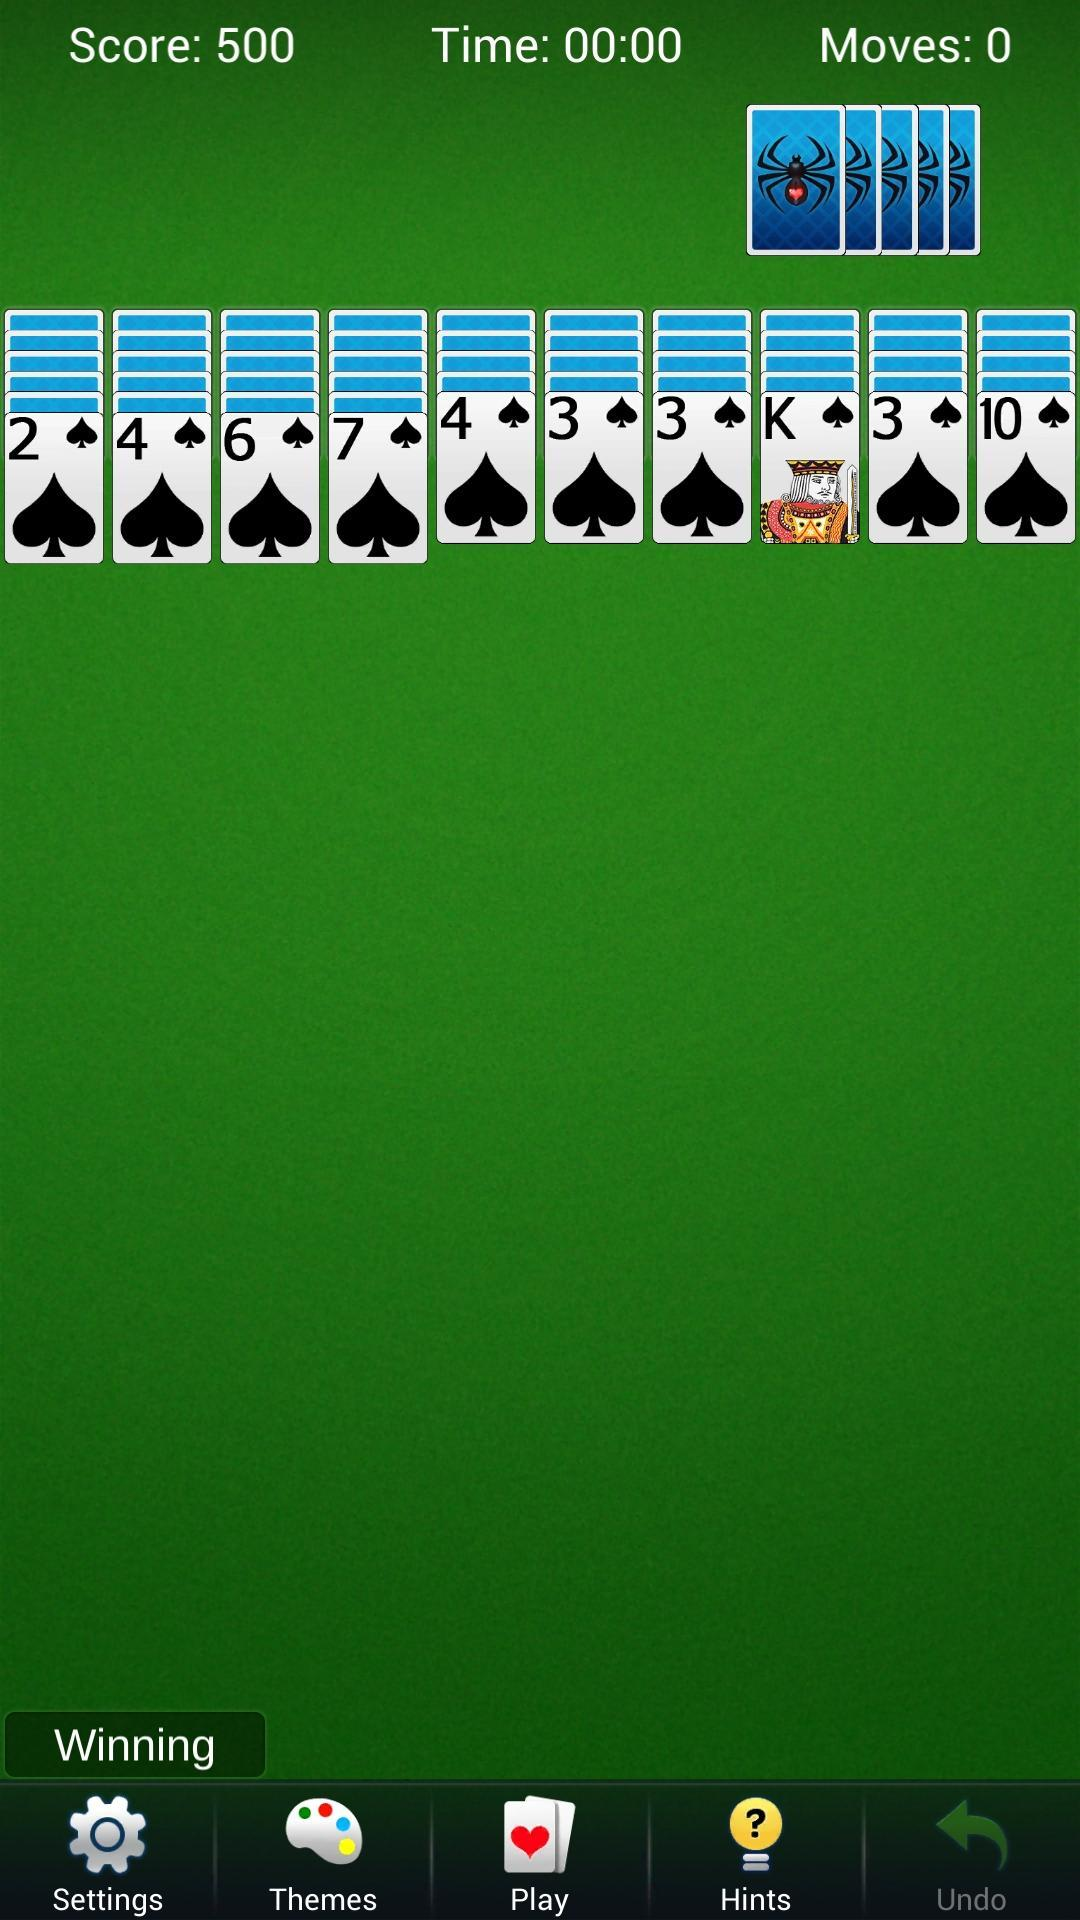 Spider Solitaire - Best Classic Card Games 1.8.0.20210225 Screenshot 9